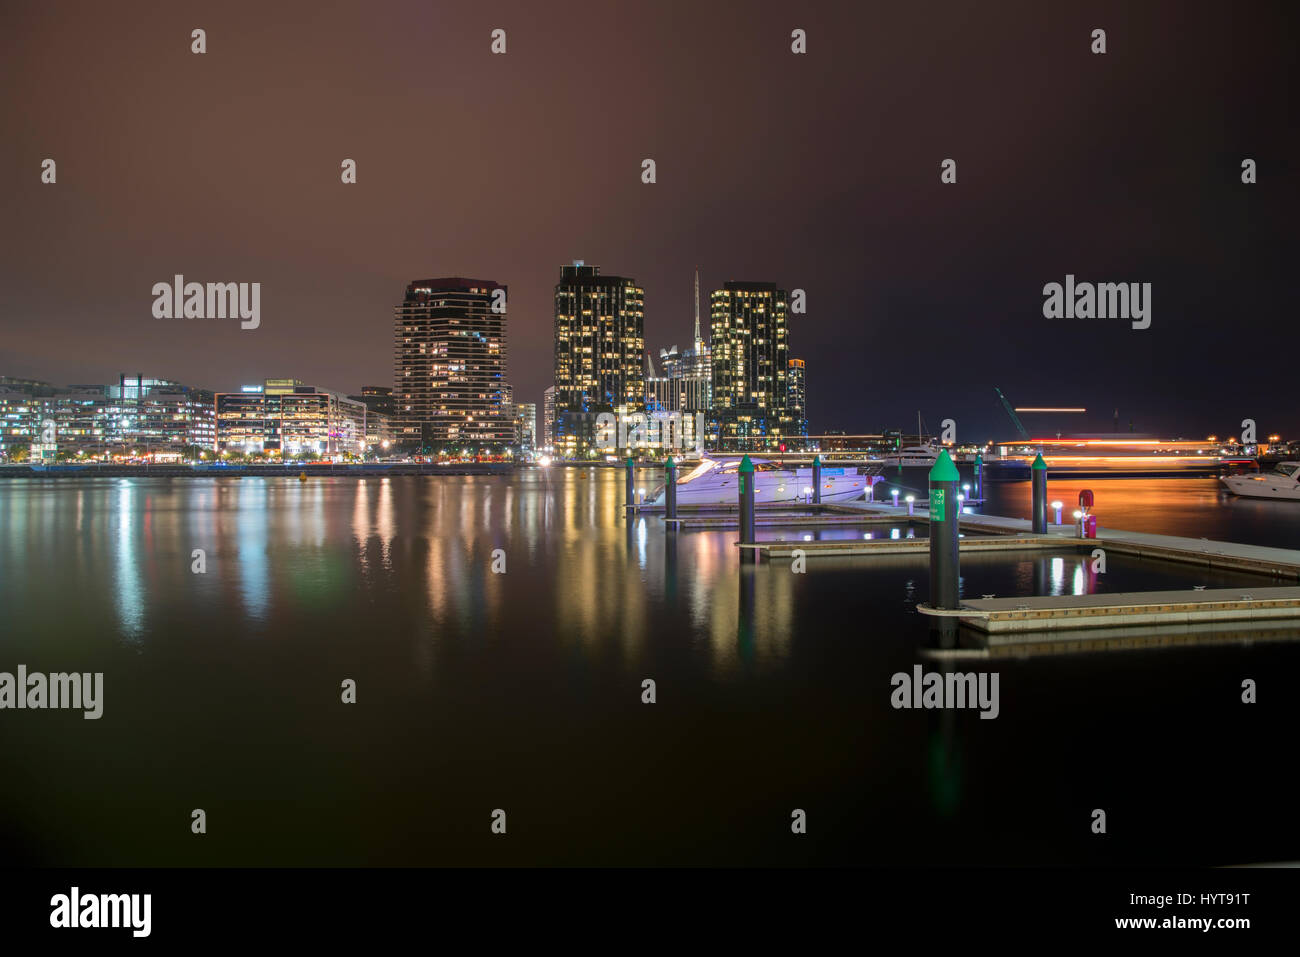 A beautiful view of a city by the sea with colorful lights and marina with private boats anchored at night. - Stock Image